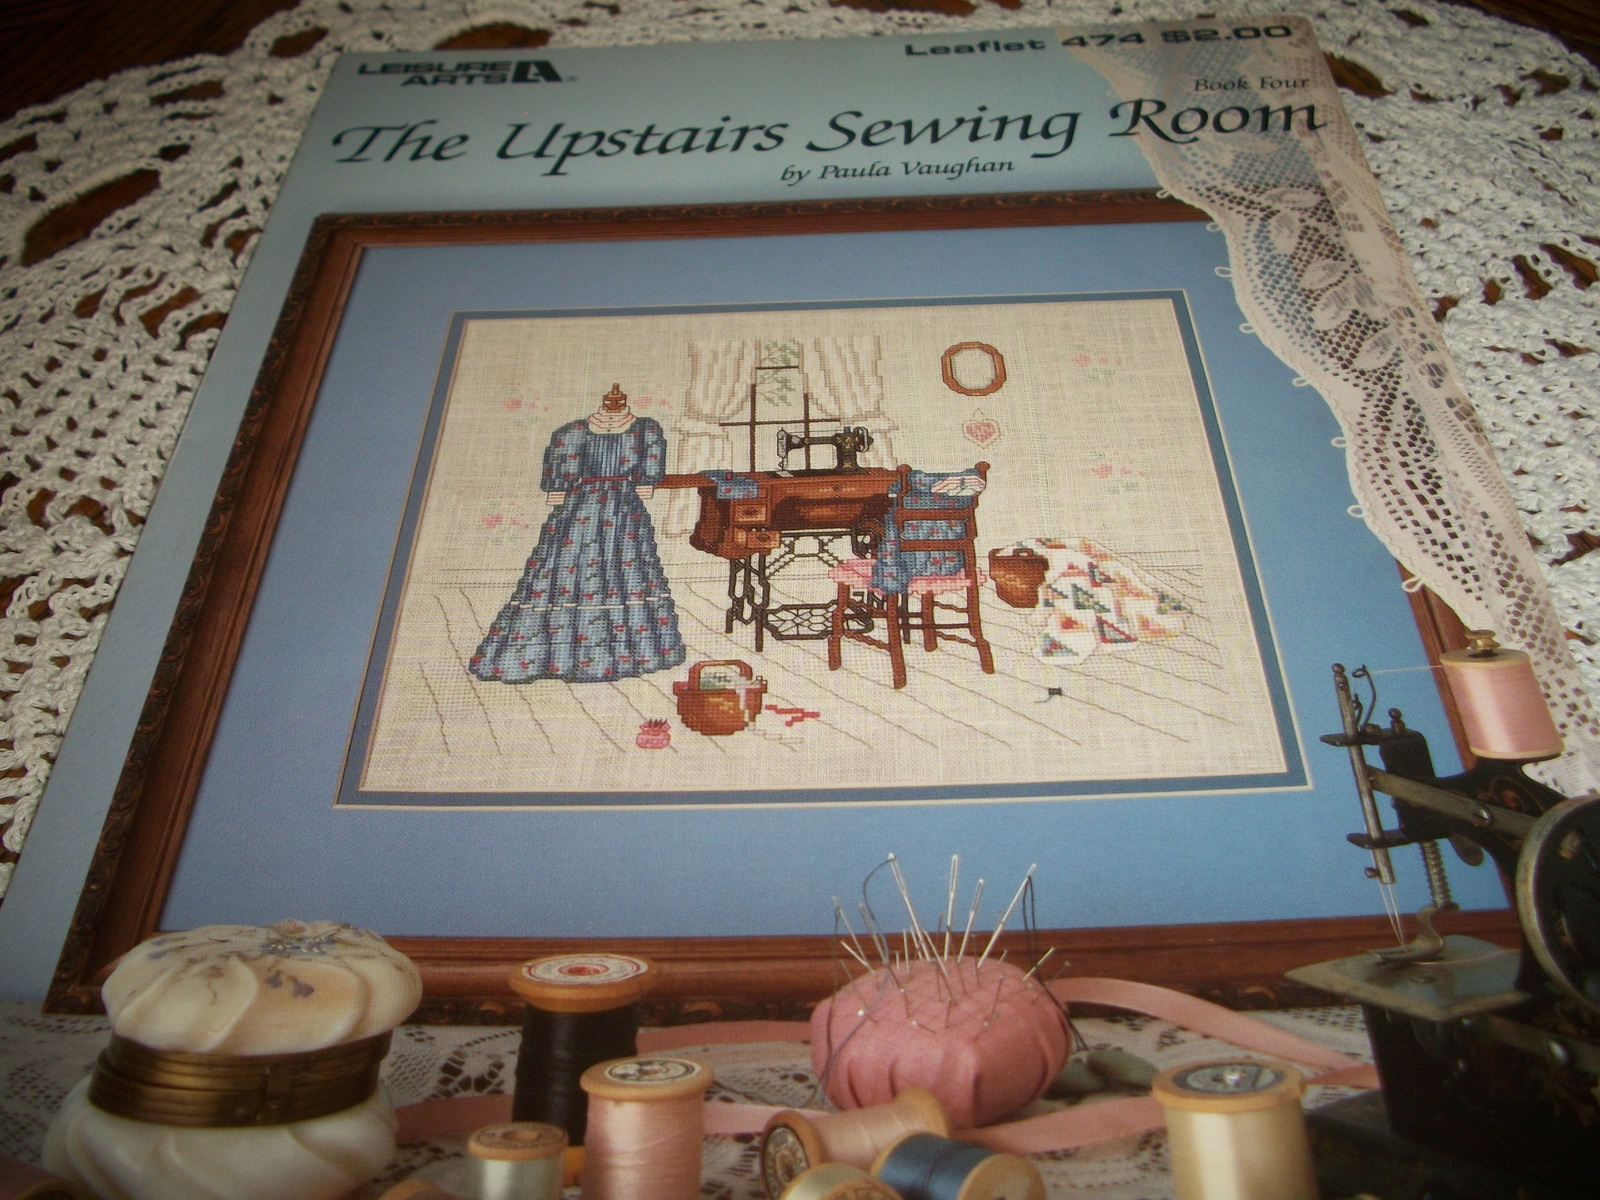 Primary image for The Upstairs Sewing Room Book Four Leaflet 474